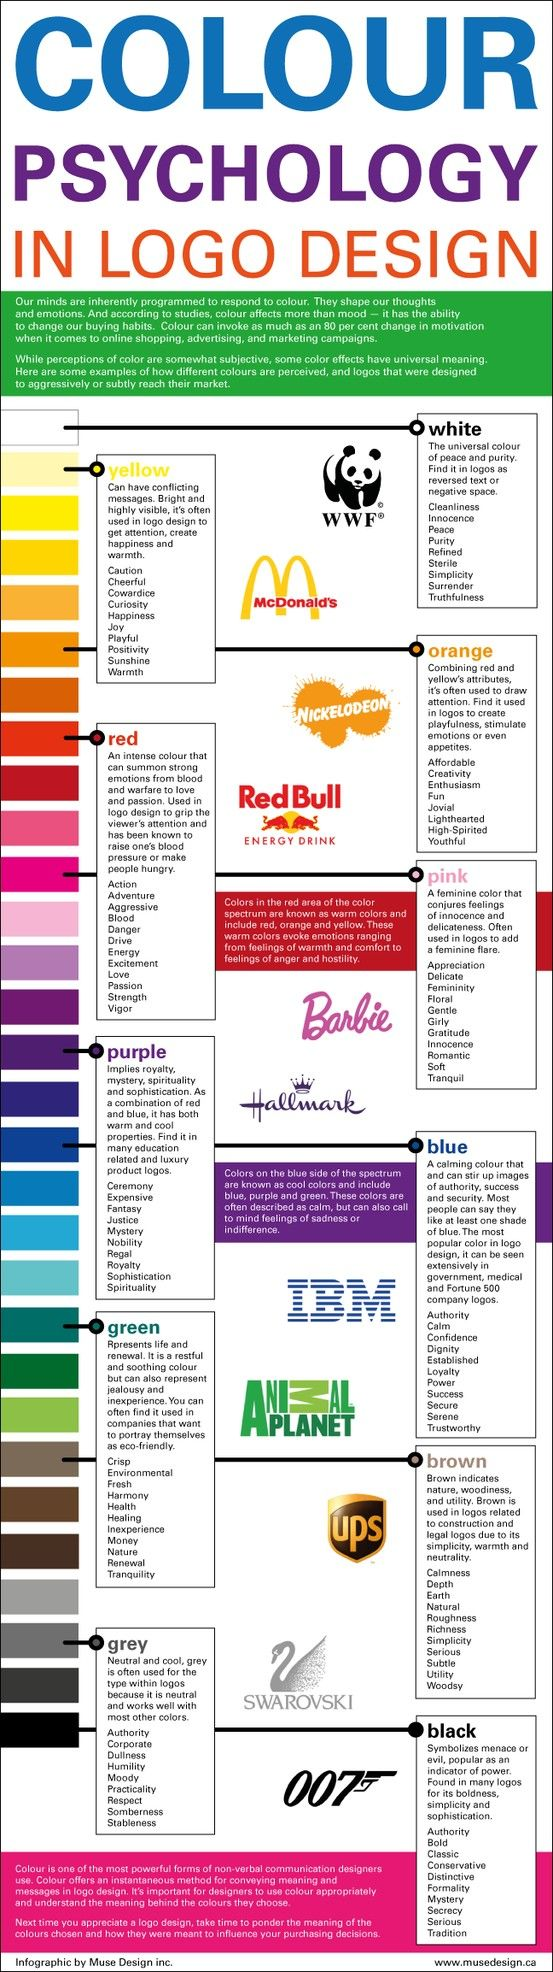 This infographic is how we interpret different famous logos and their colors.